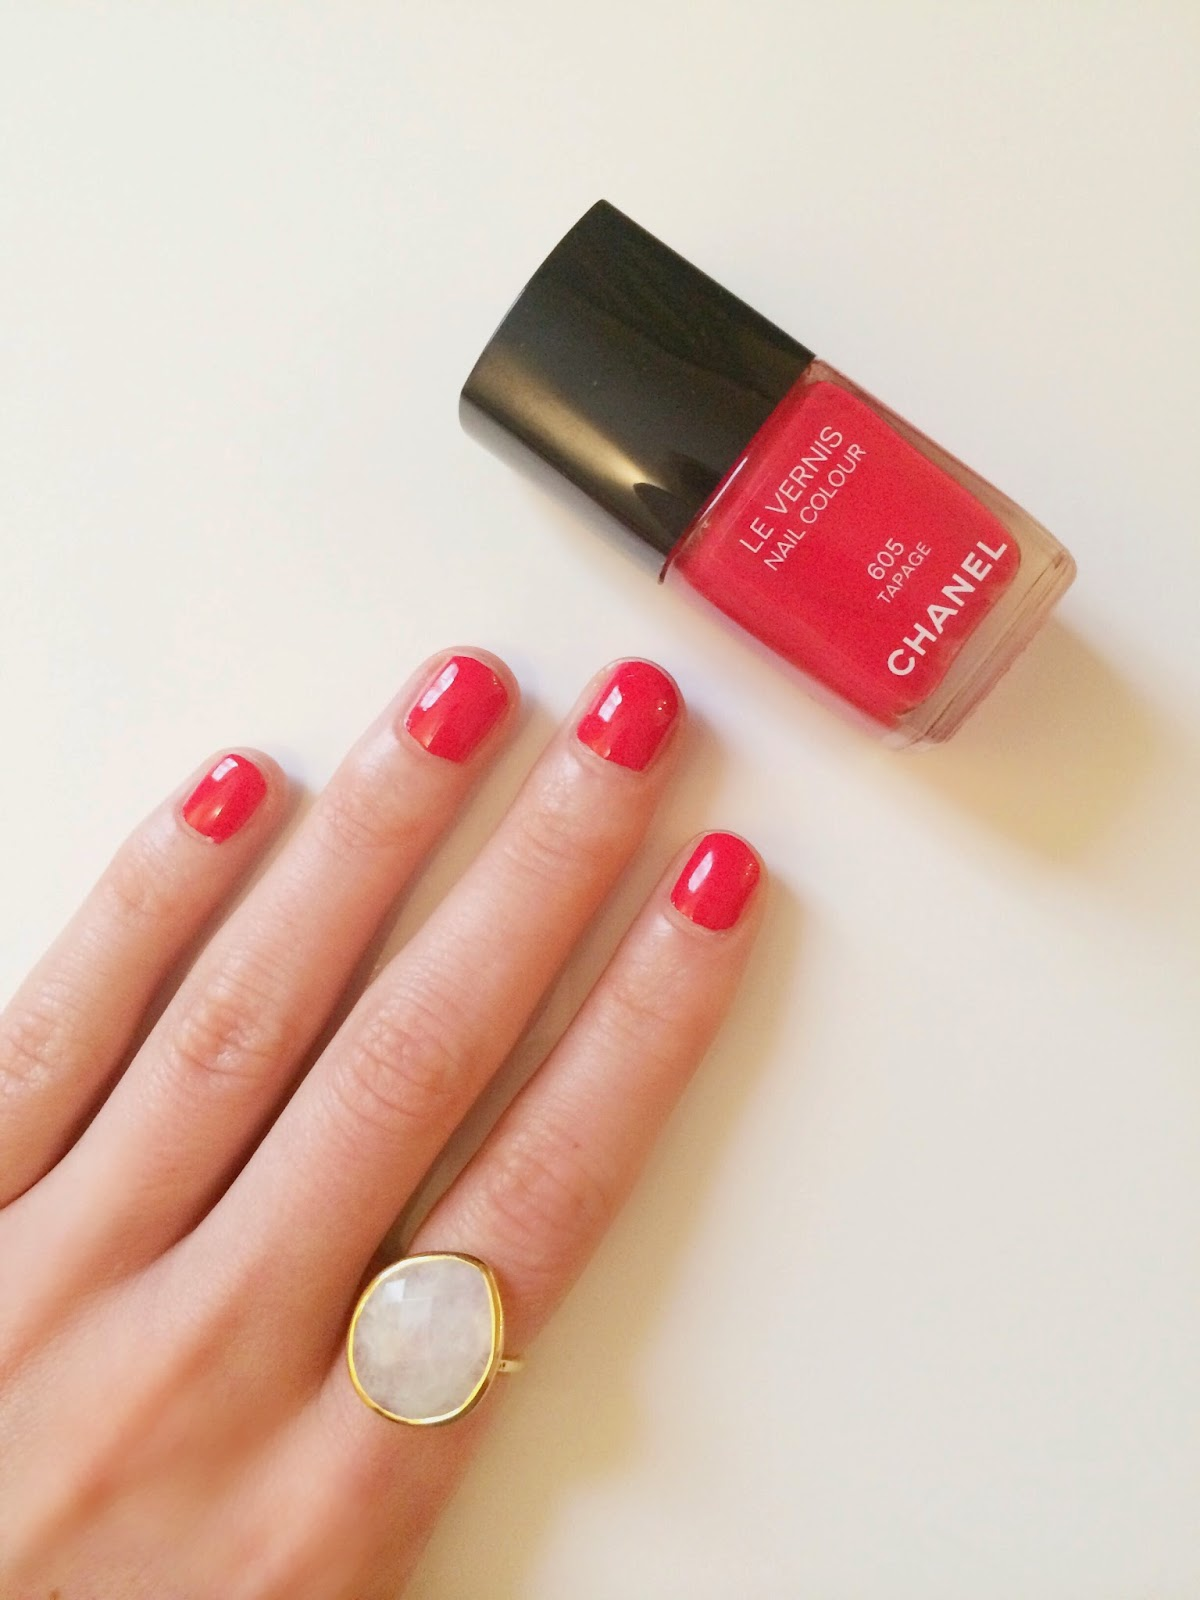 chanel tapage, chanel nail polish, monica vinader ring, red nail polish